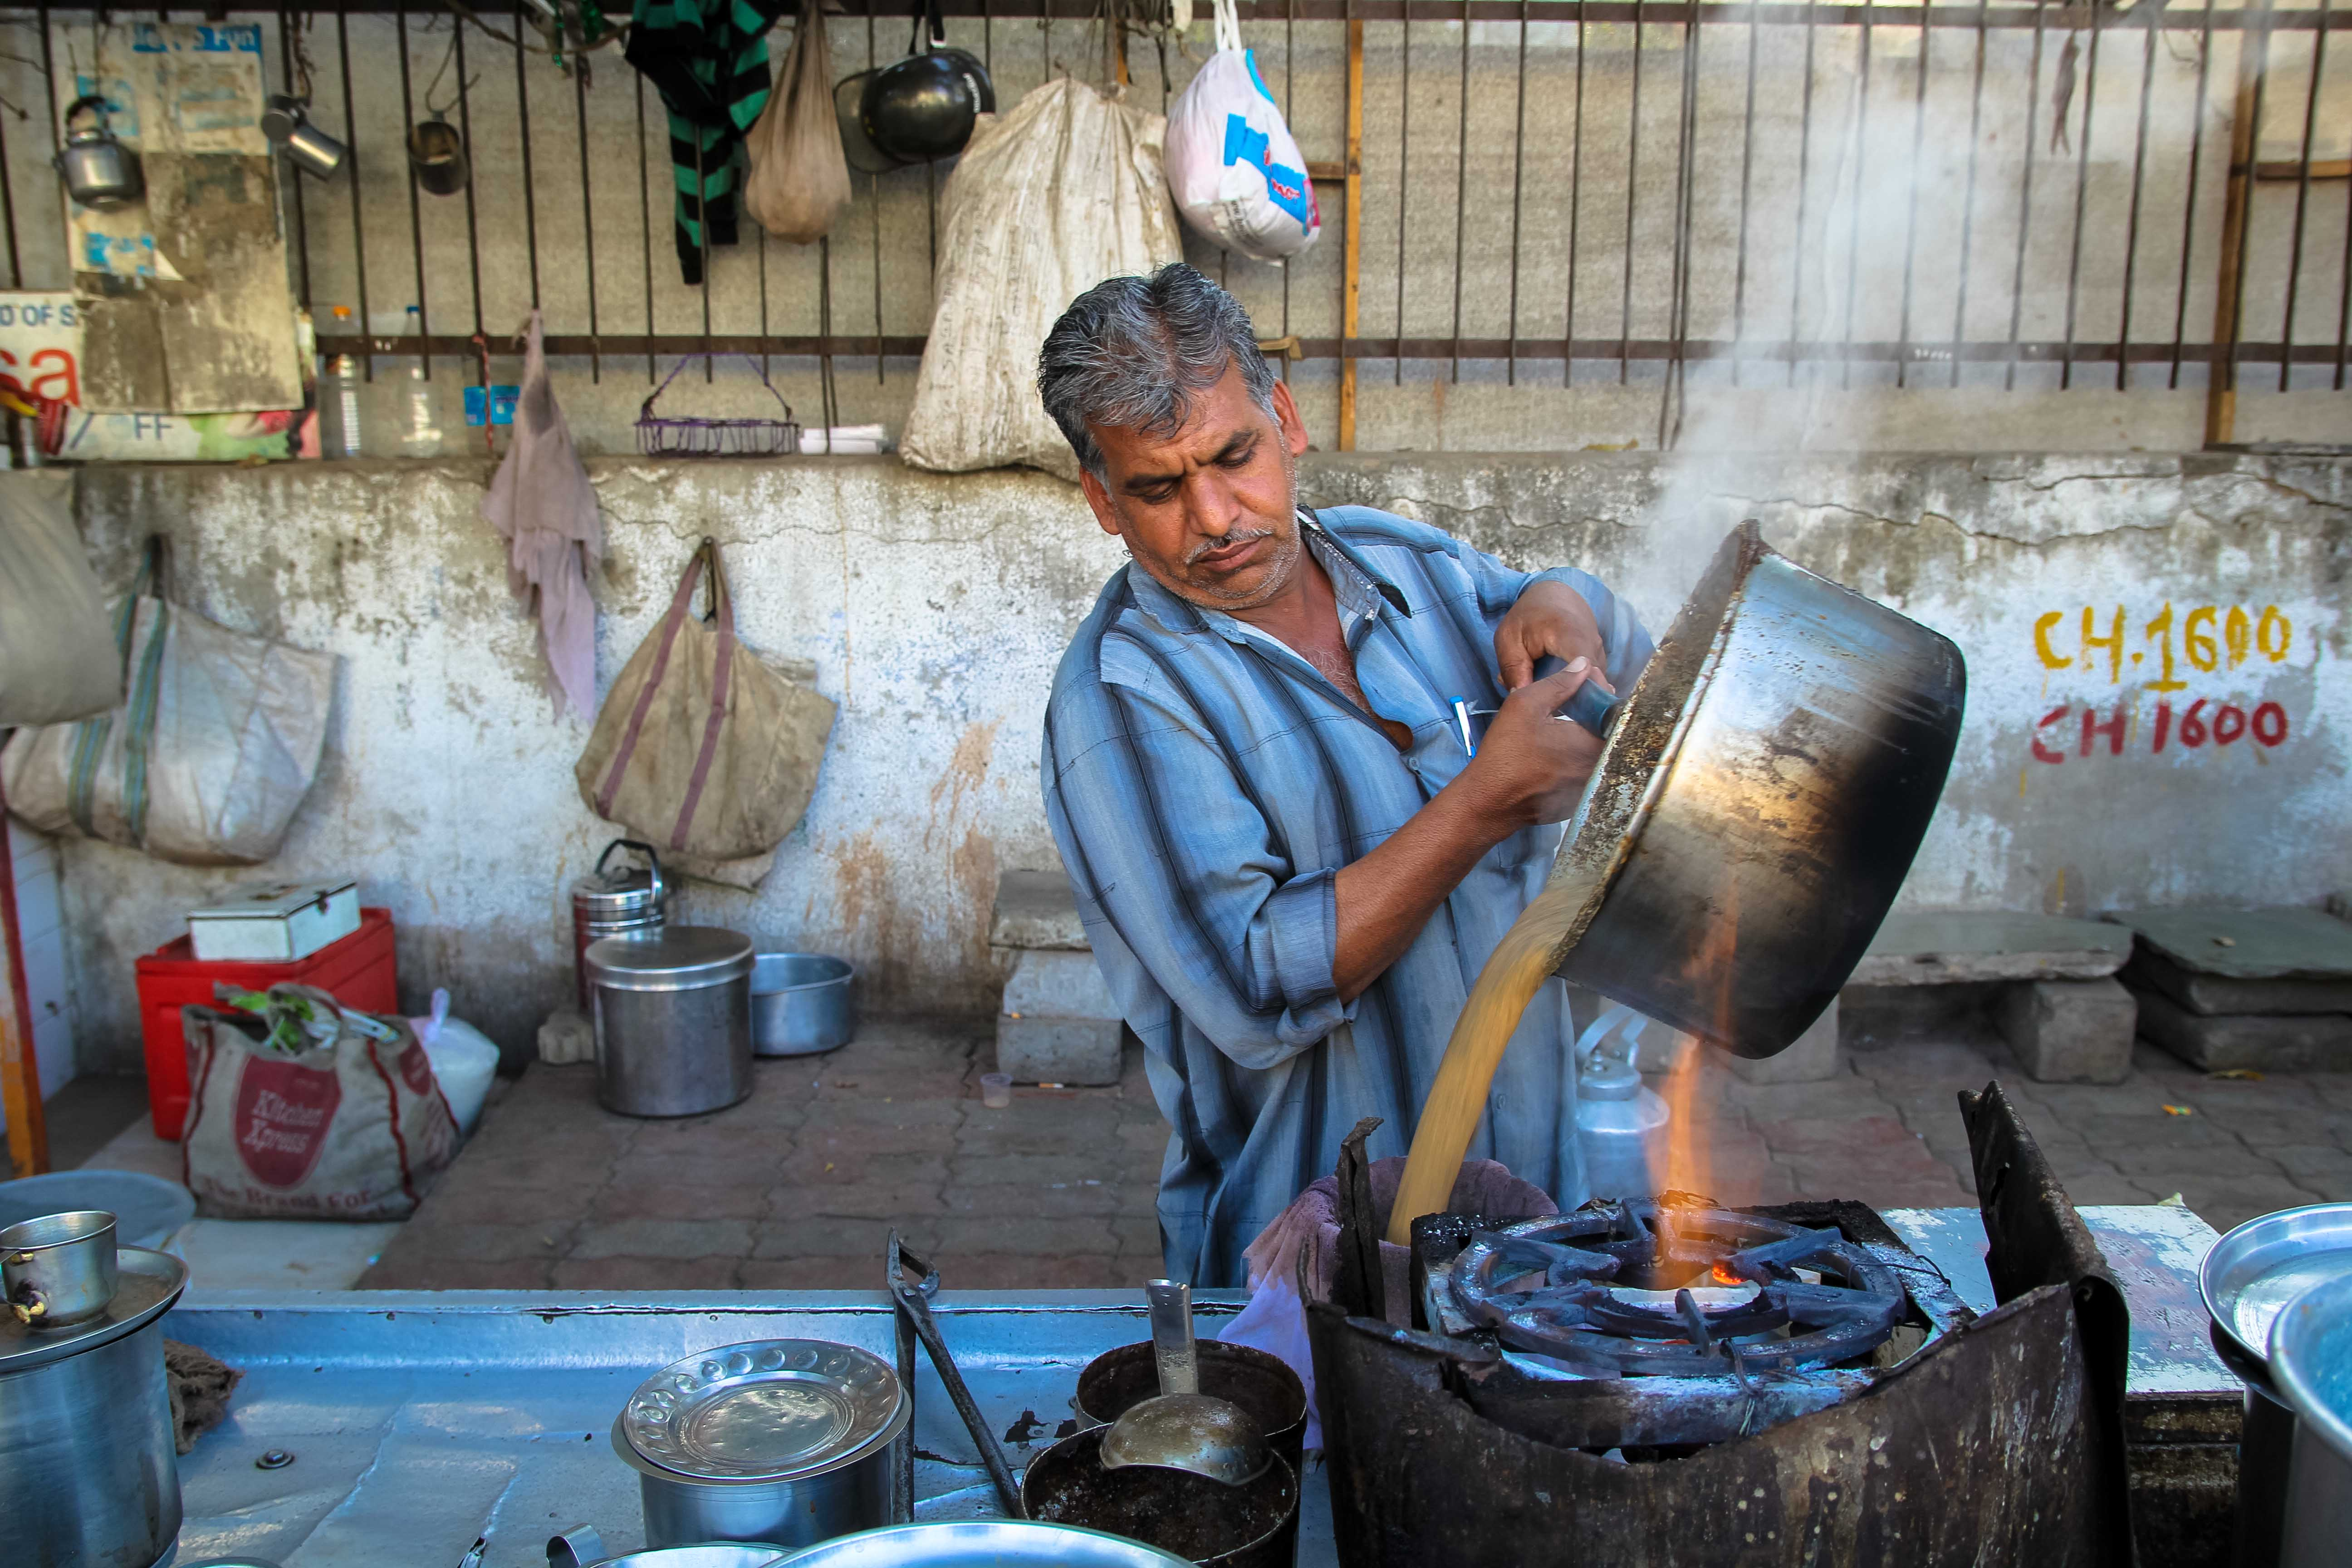 Bharat Bhai strains a pot of his special cardamom chai.